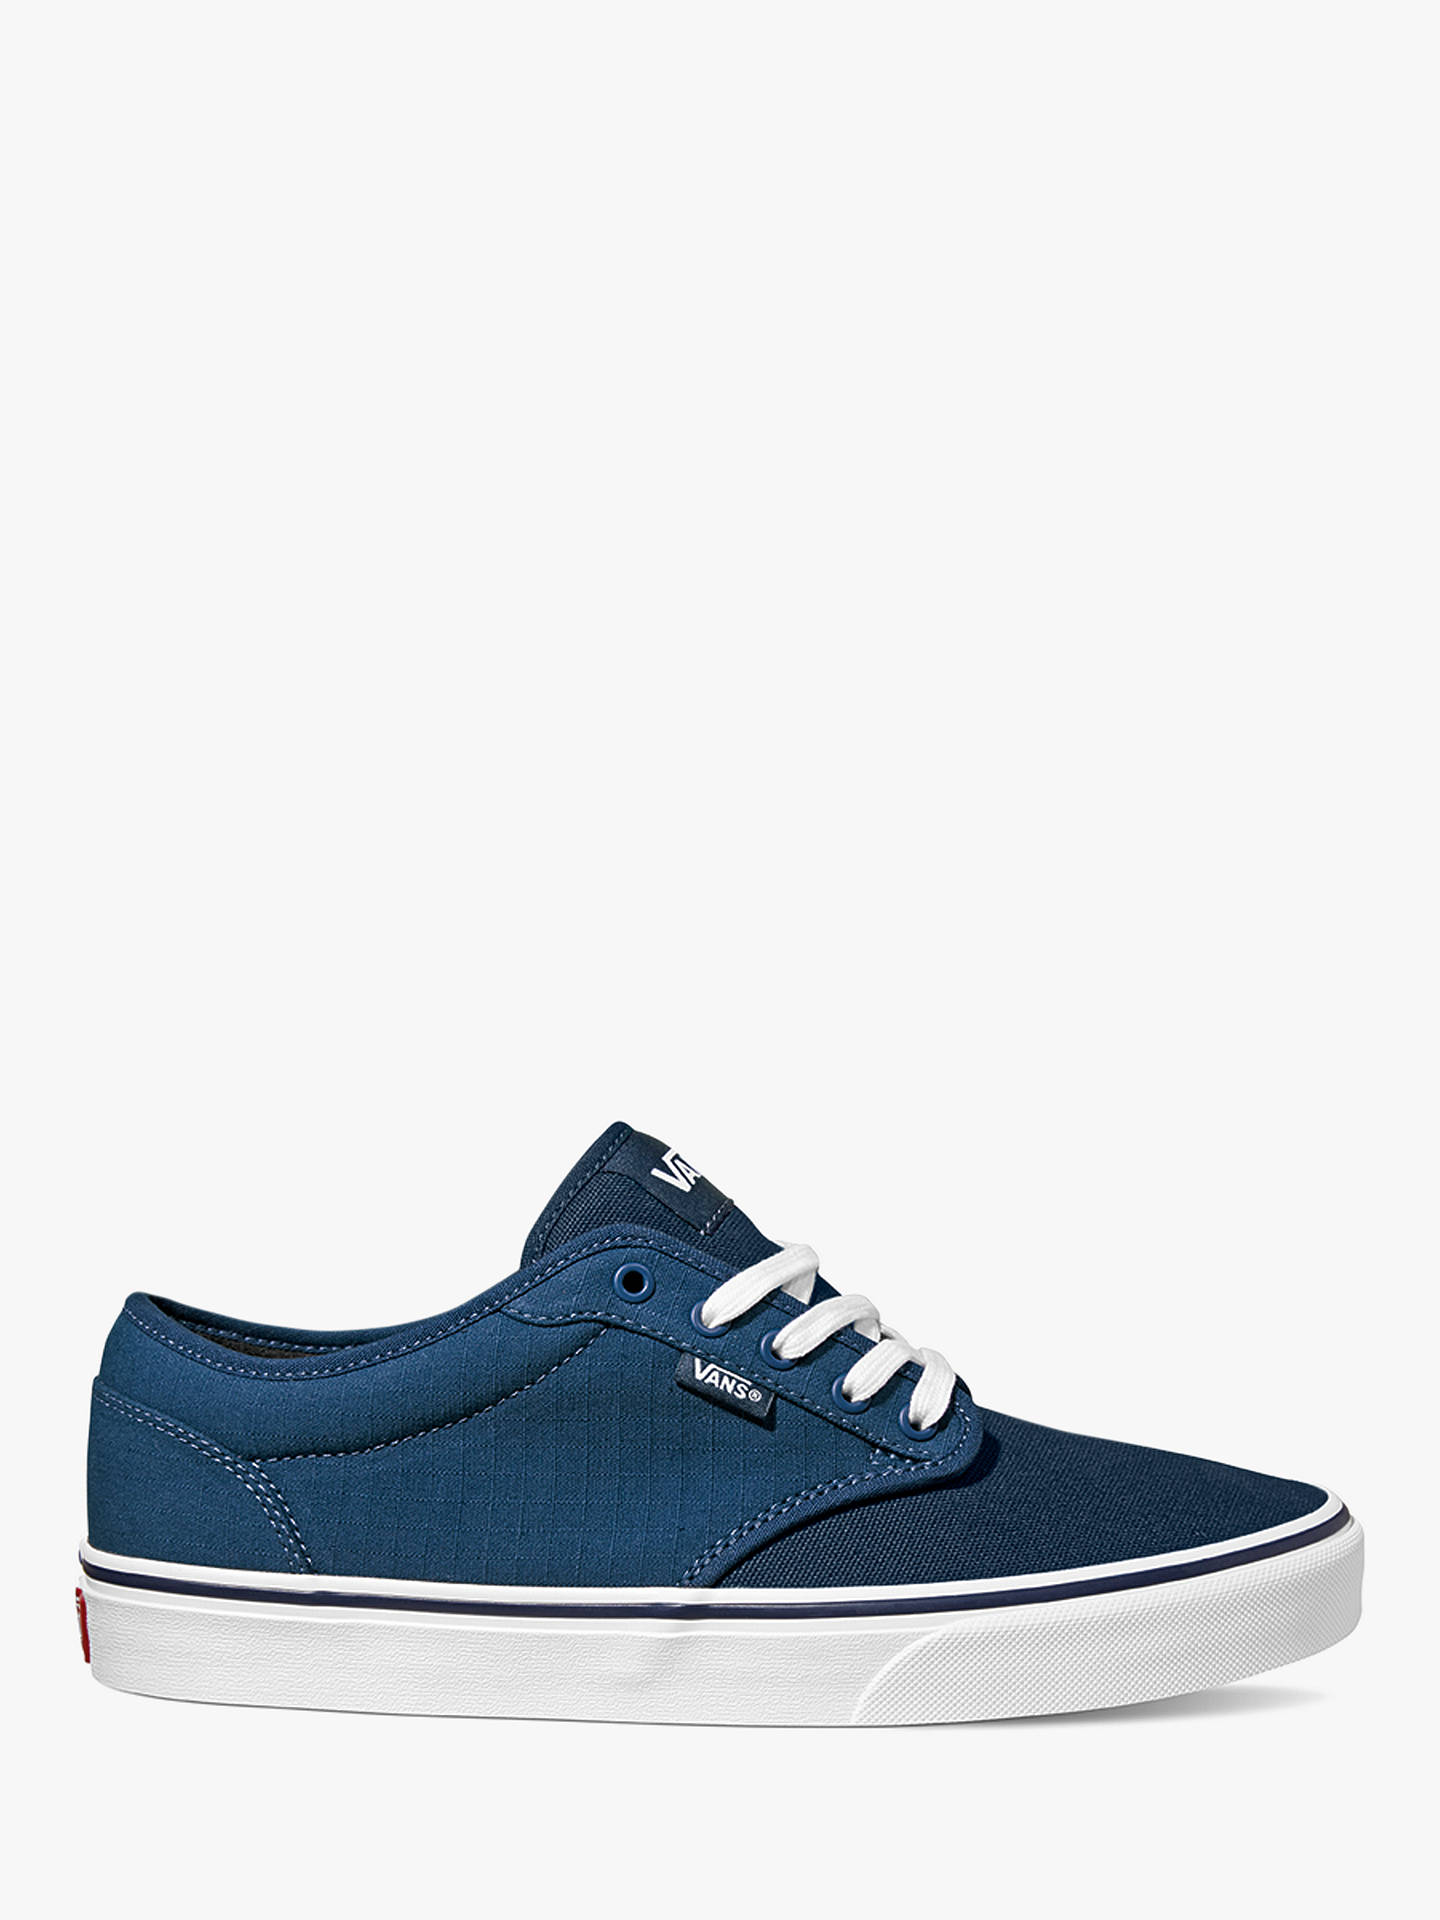 b4e30cca192 Buy Vans Atwood Canvas Trainers